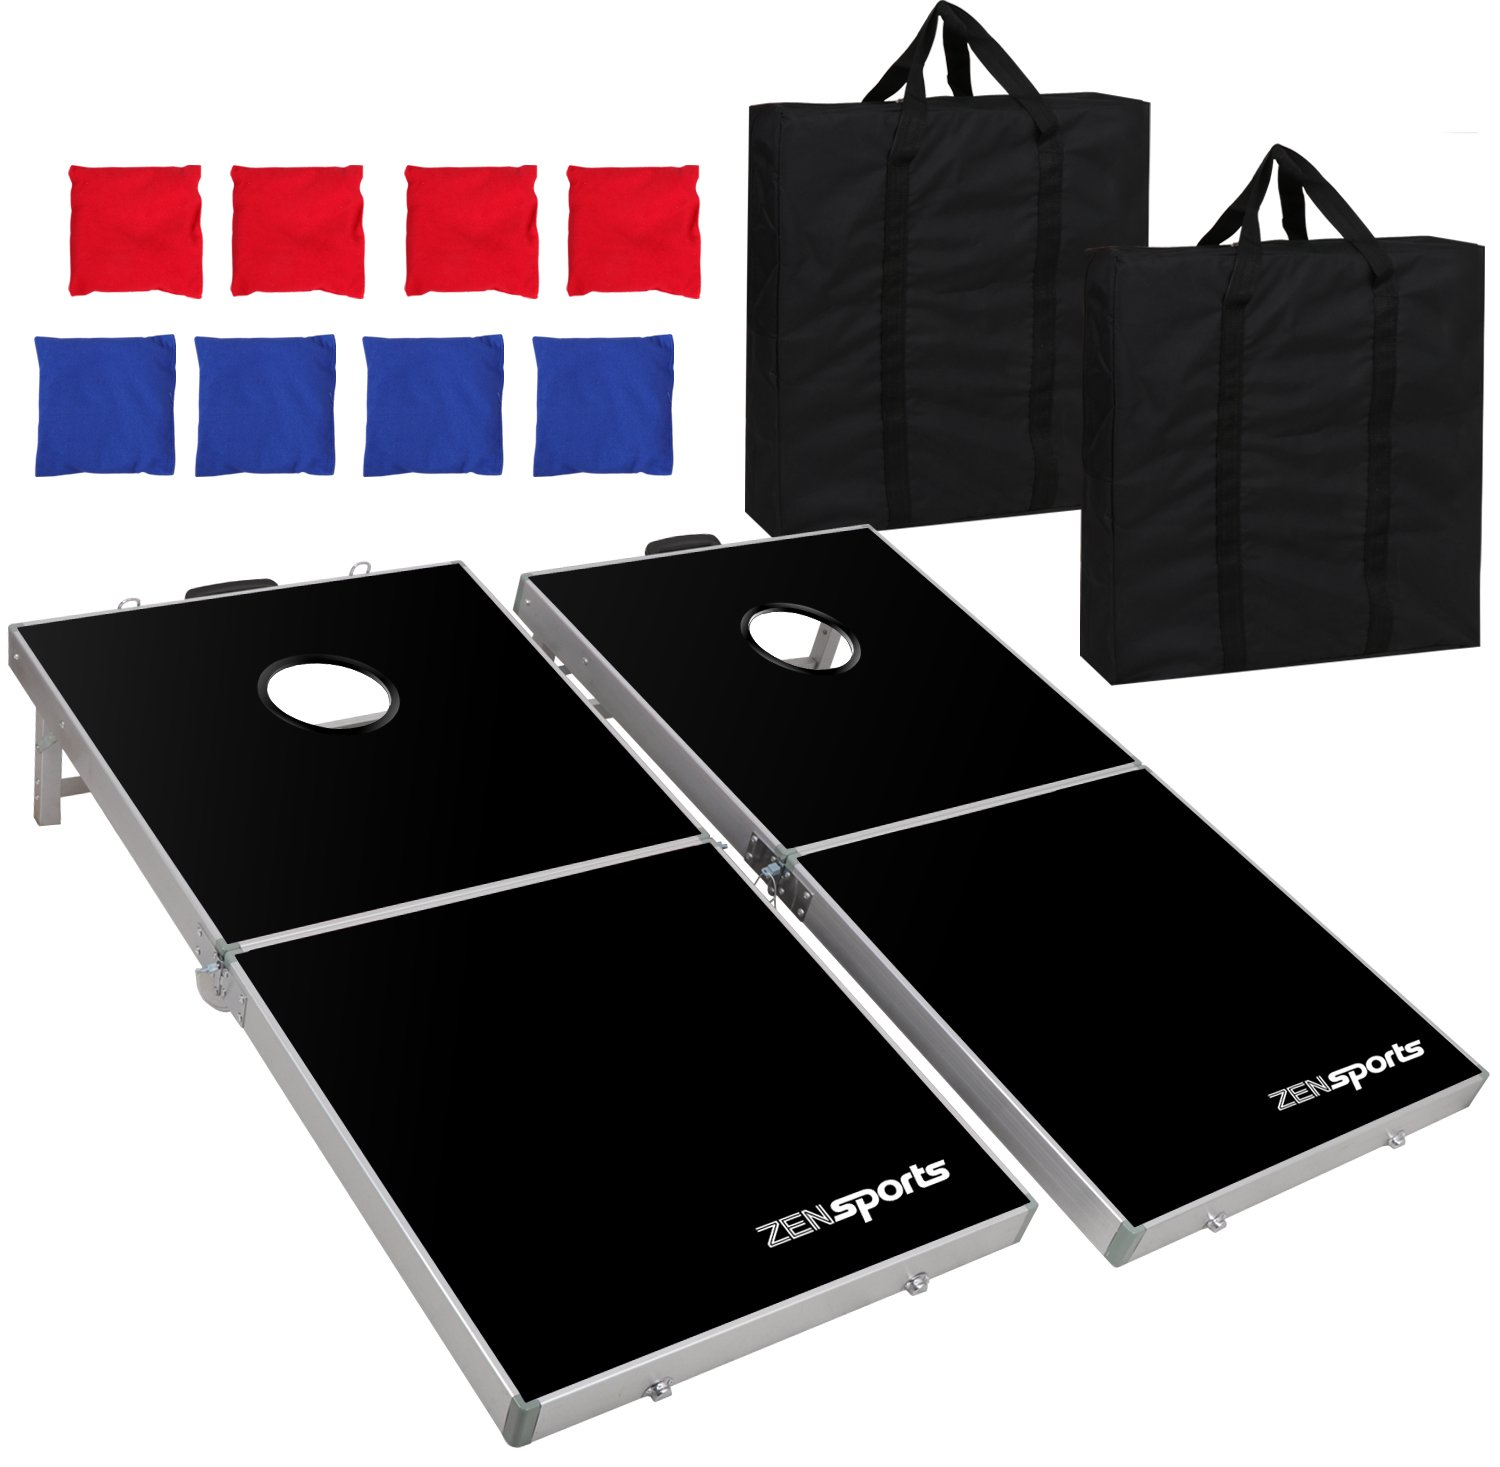 ZENY 4' x 2' Alumiunm Foldable Bean Bag Toss Cornhole Board Game Set Regulation Size Cornhole Boards & 8 Bags Set Playset Backyard Outdoor Portable by ZENY